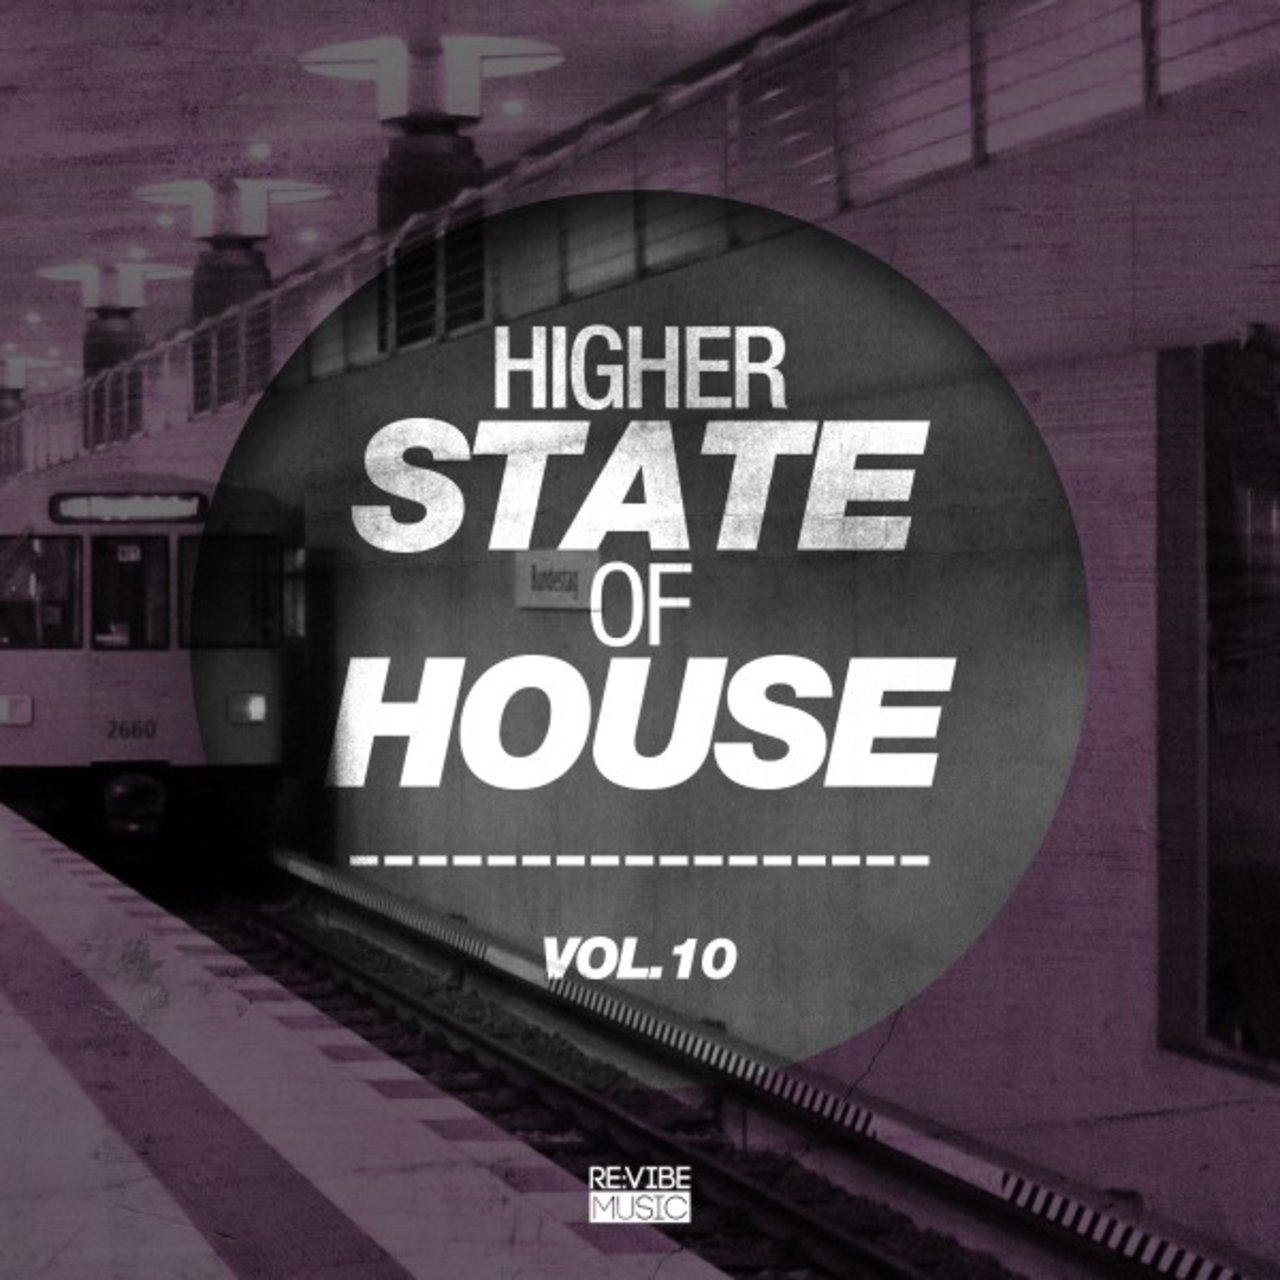 Higher State of House, Vol. 10